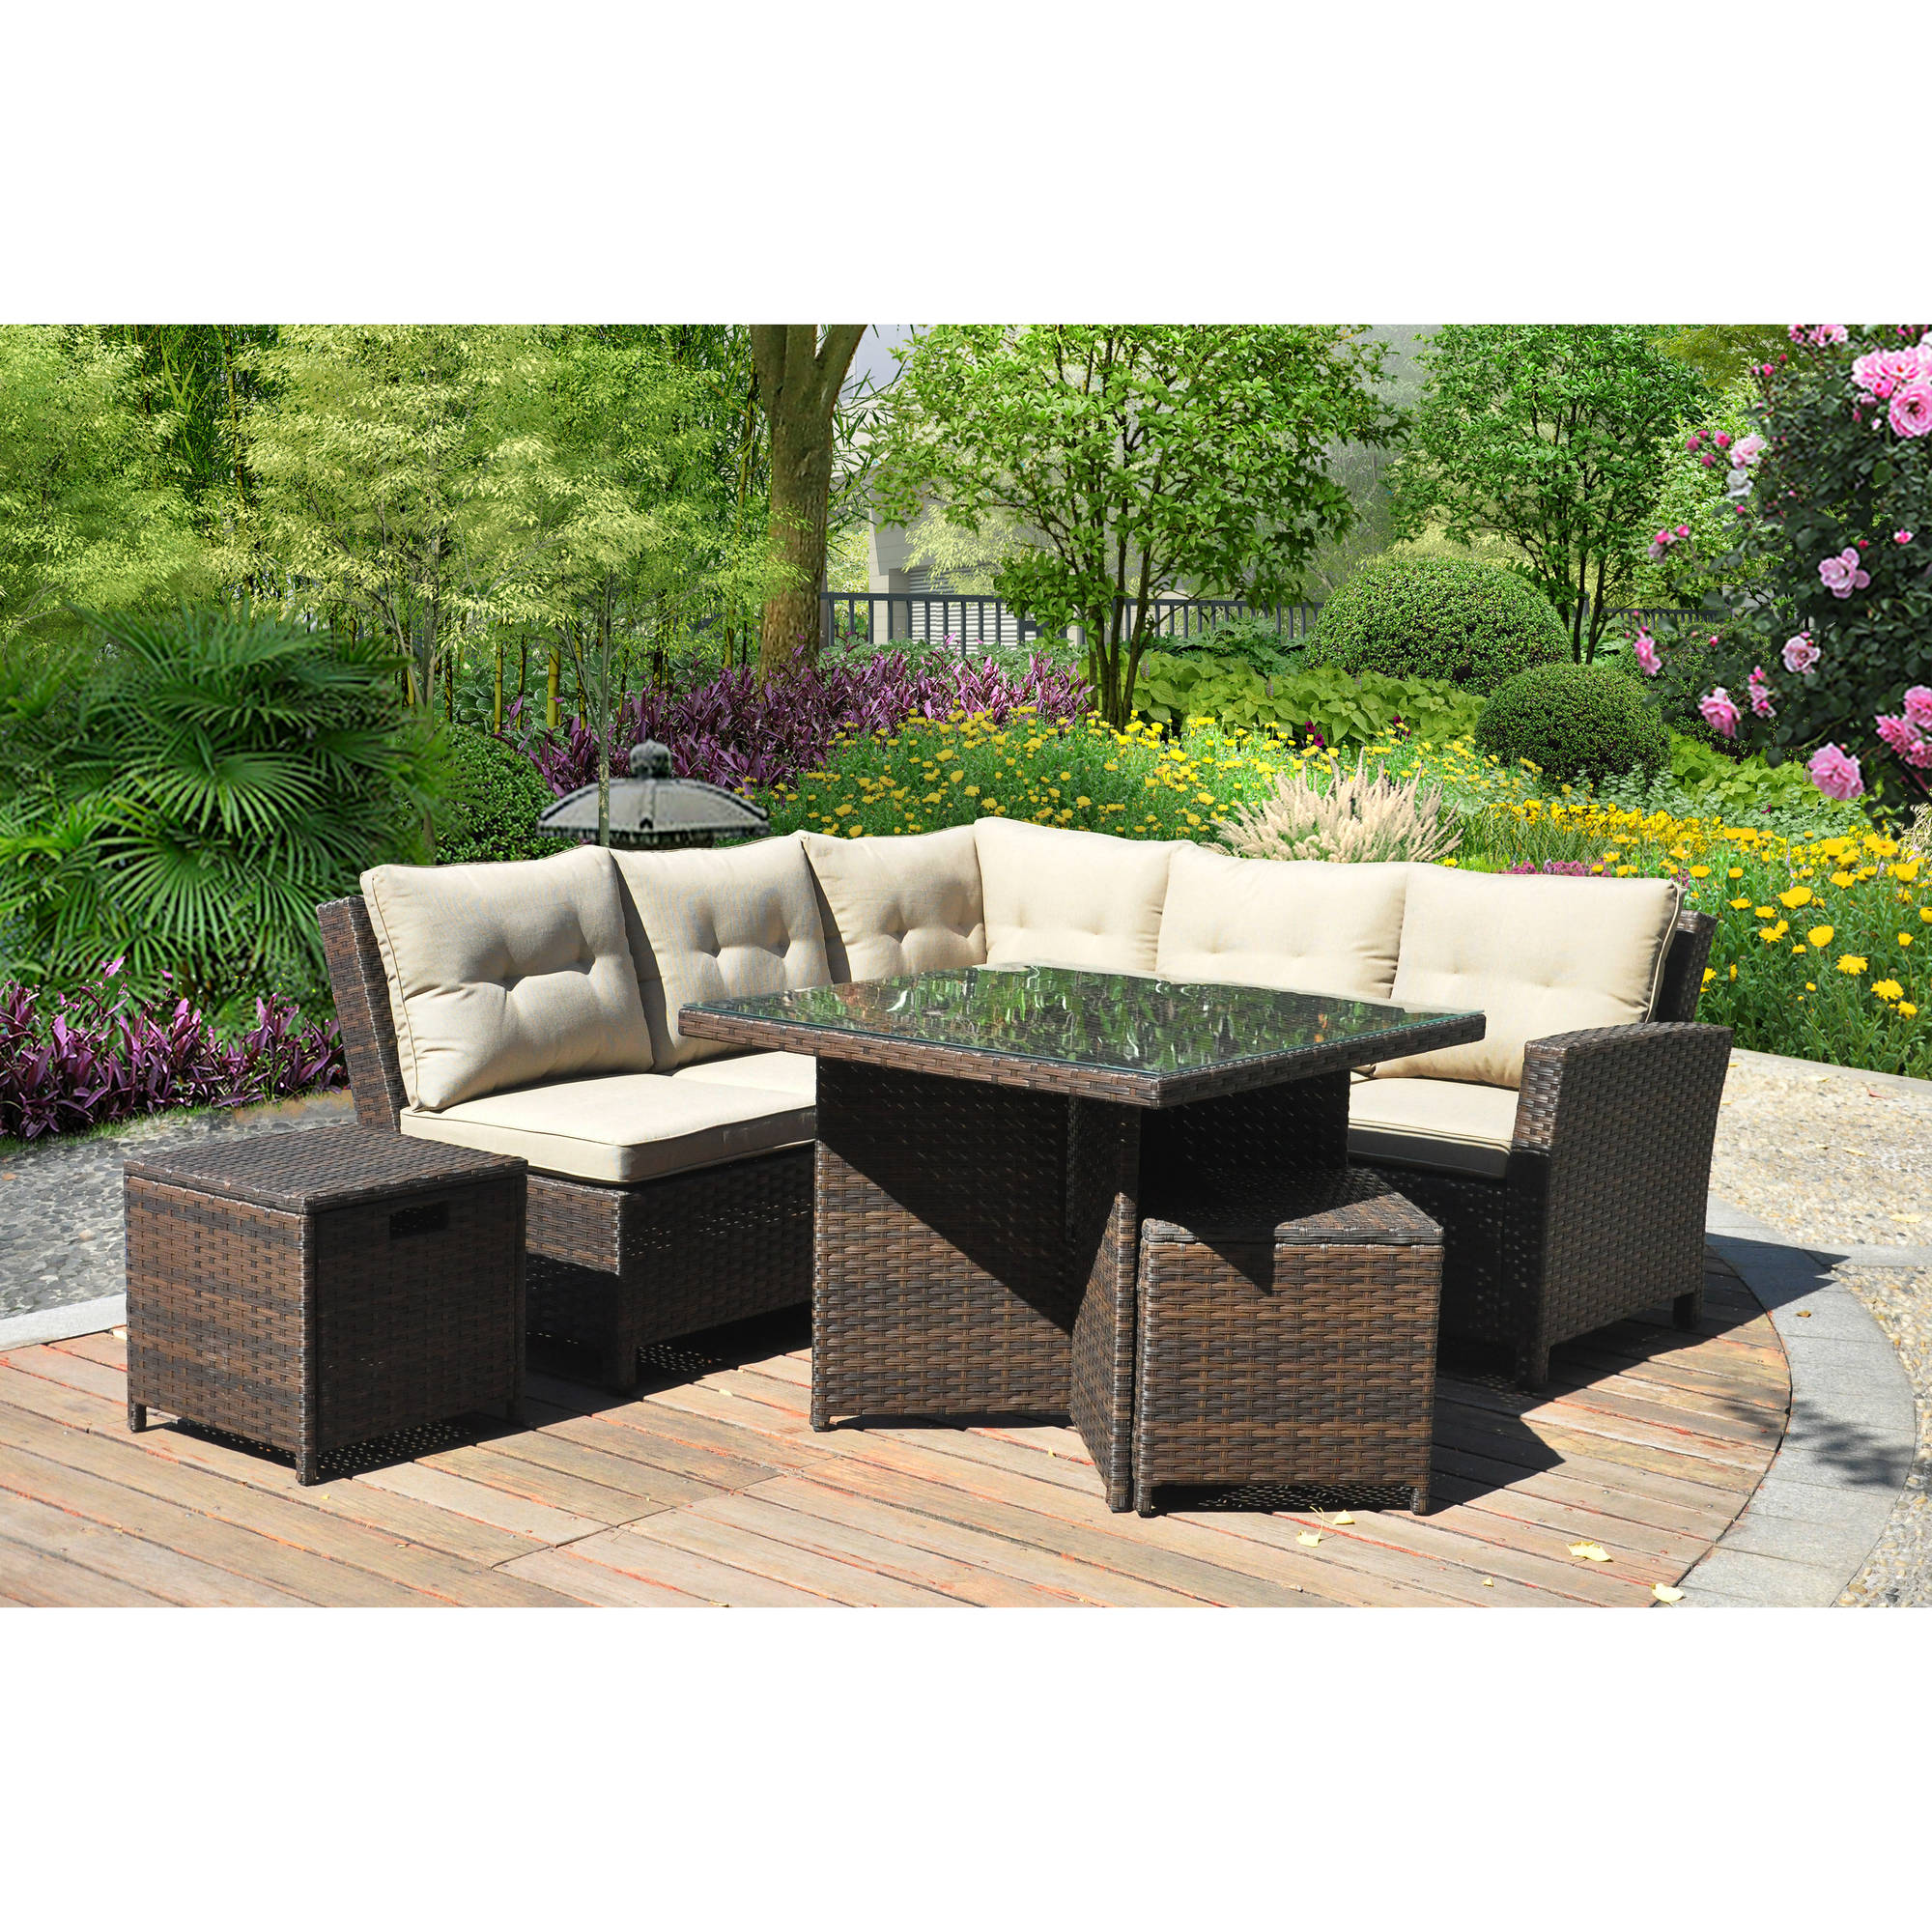 Better Homes And Gardens Baytown 5 Piece Woven Sectional Sofa Set Seats